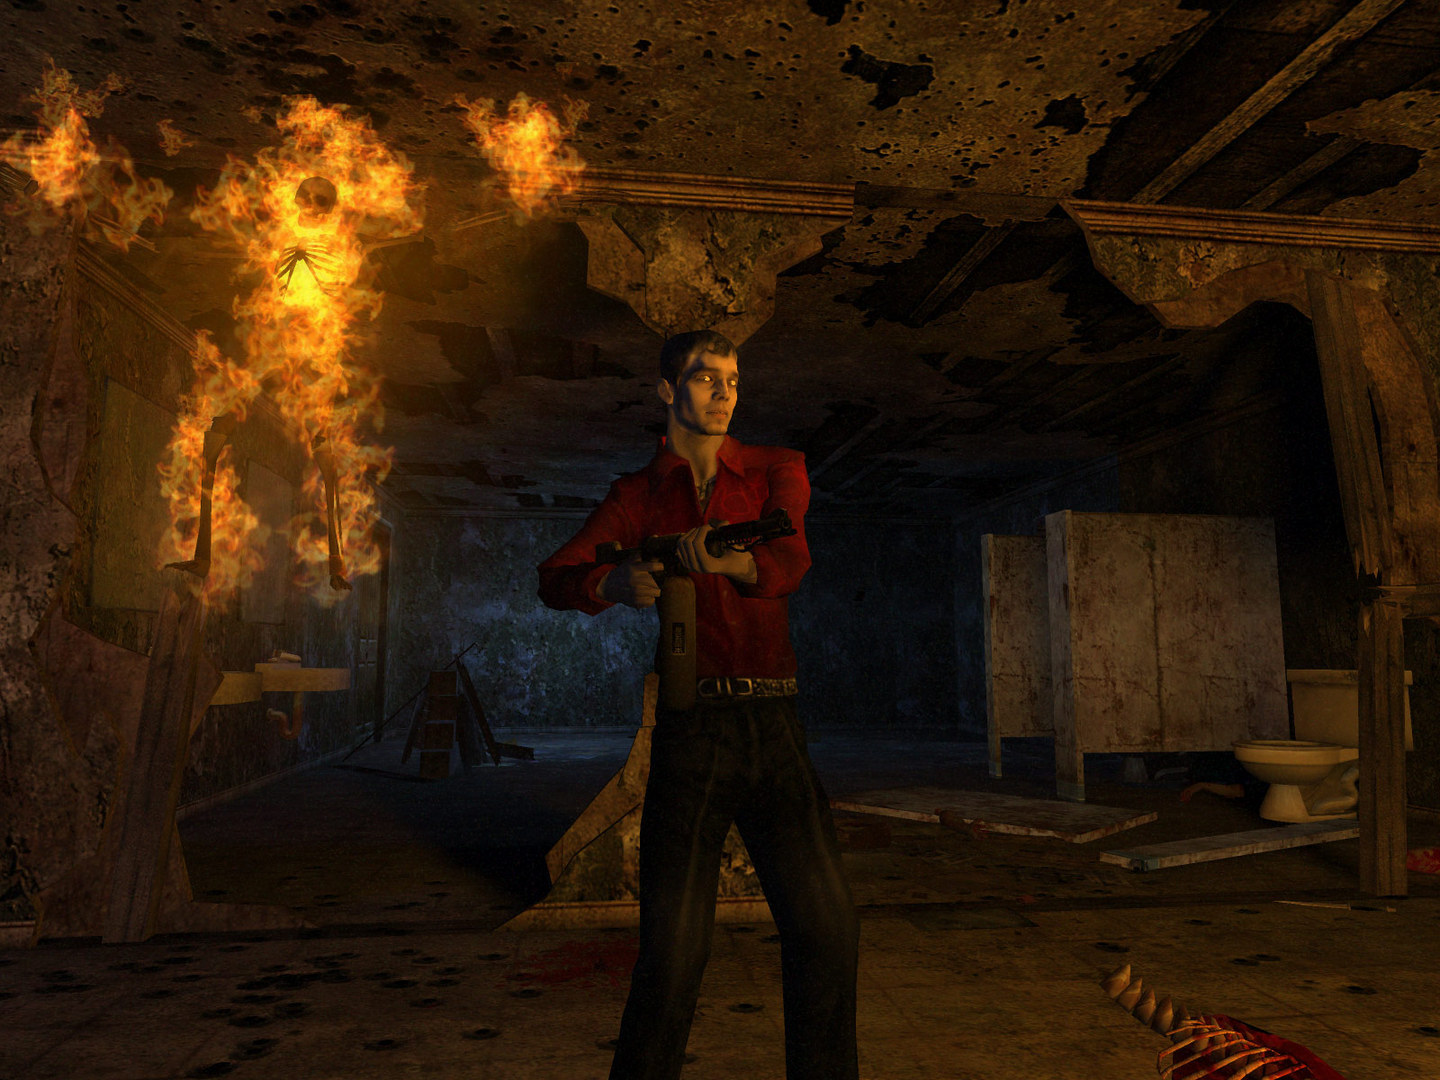 Vampire: The Masquerade - Bloodlines - PC Game Review - Everywhere